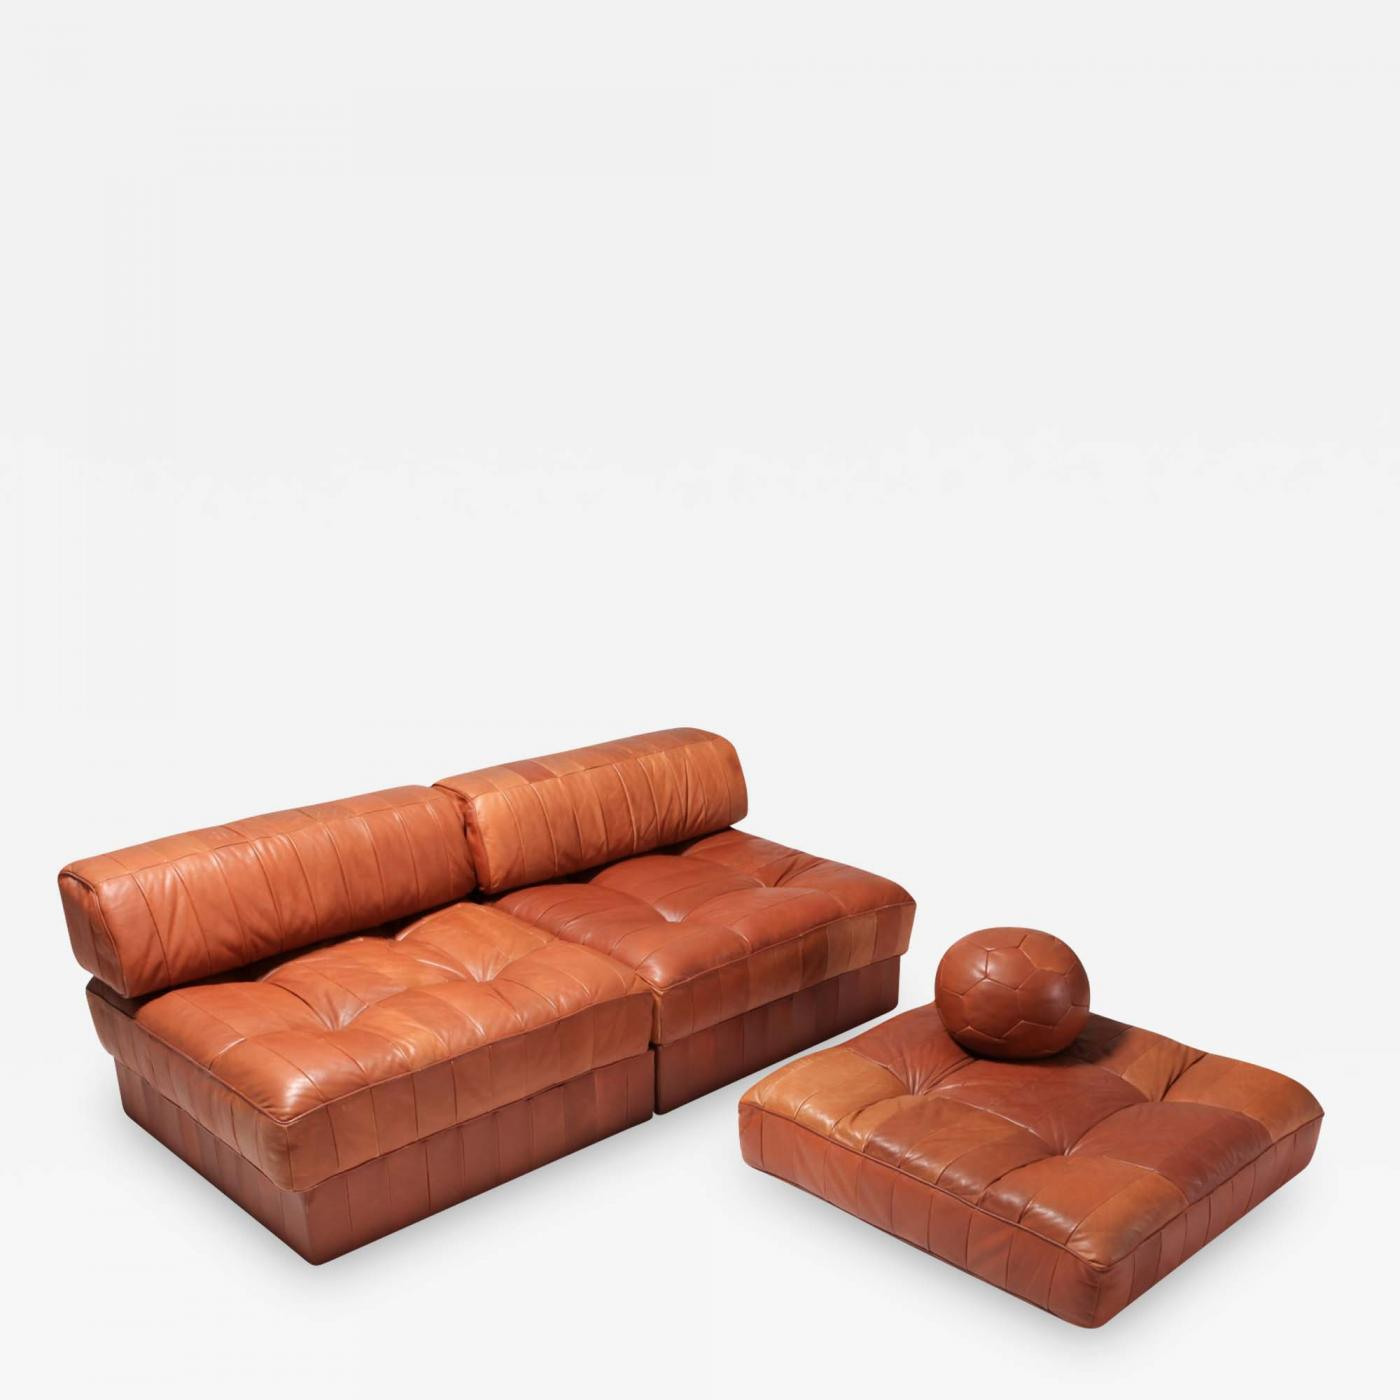 De Sede Patchwork.De Sede Cognac Leather Patchwork Ds 88 De Sede